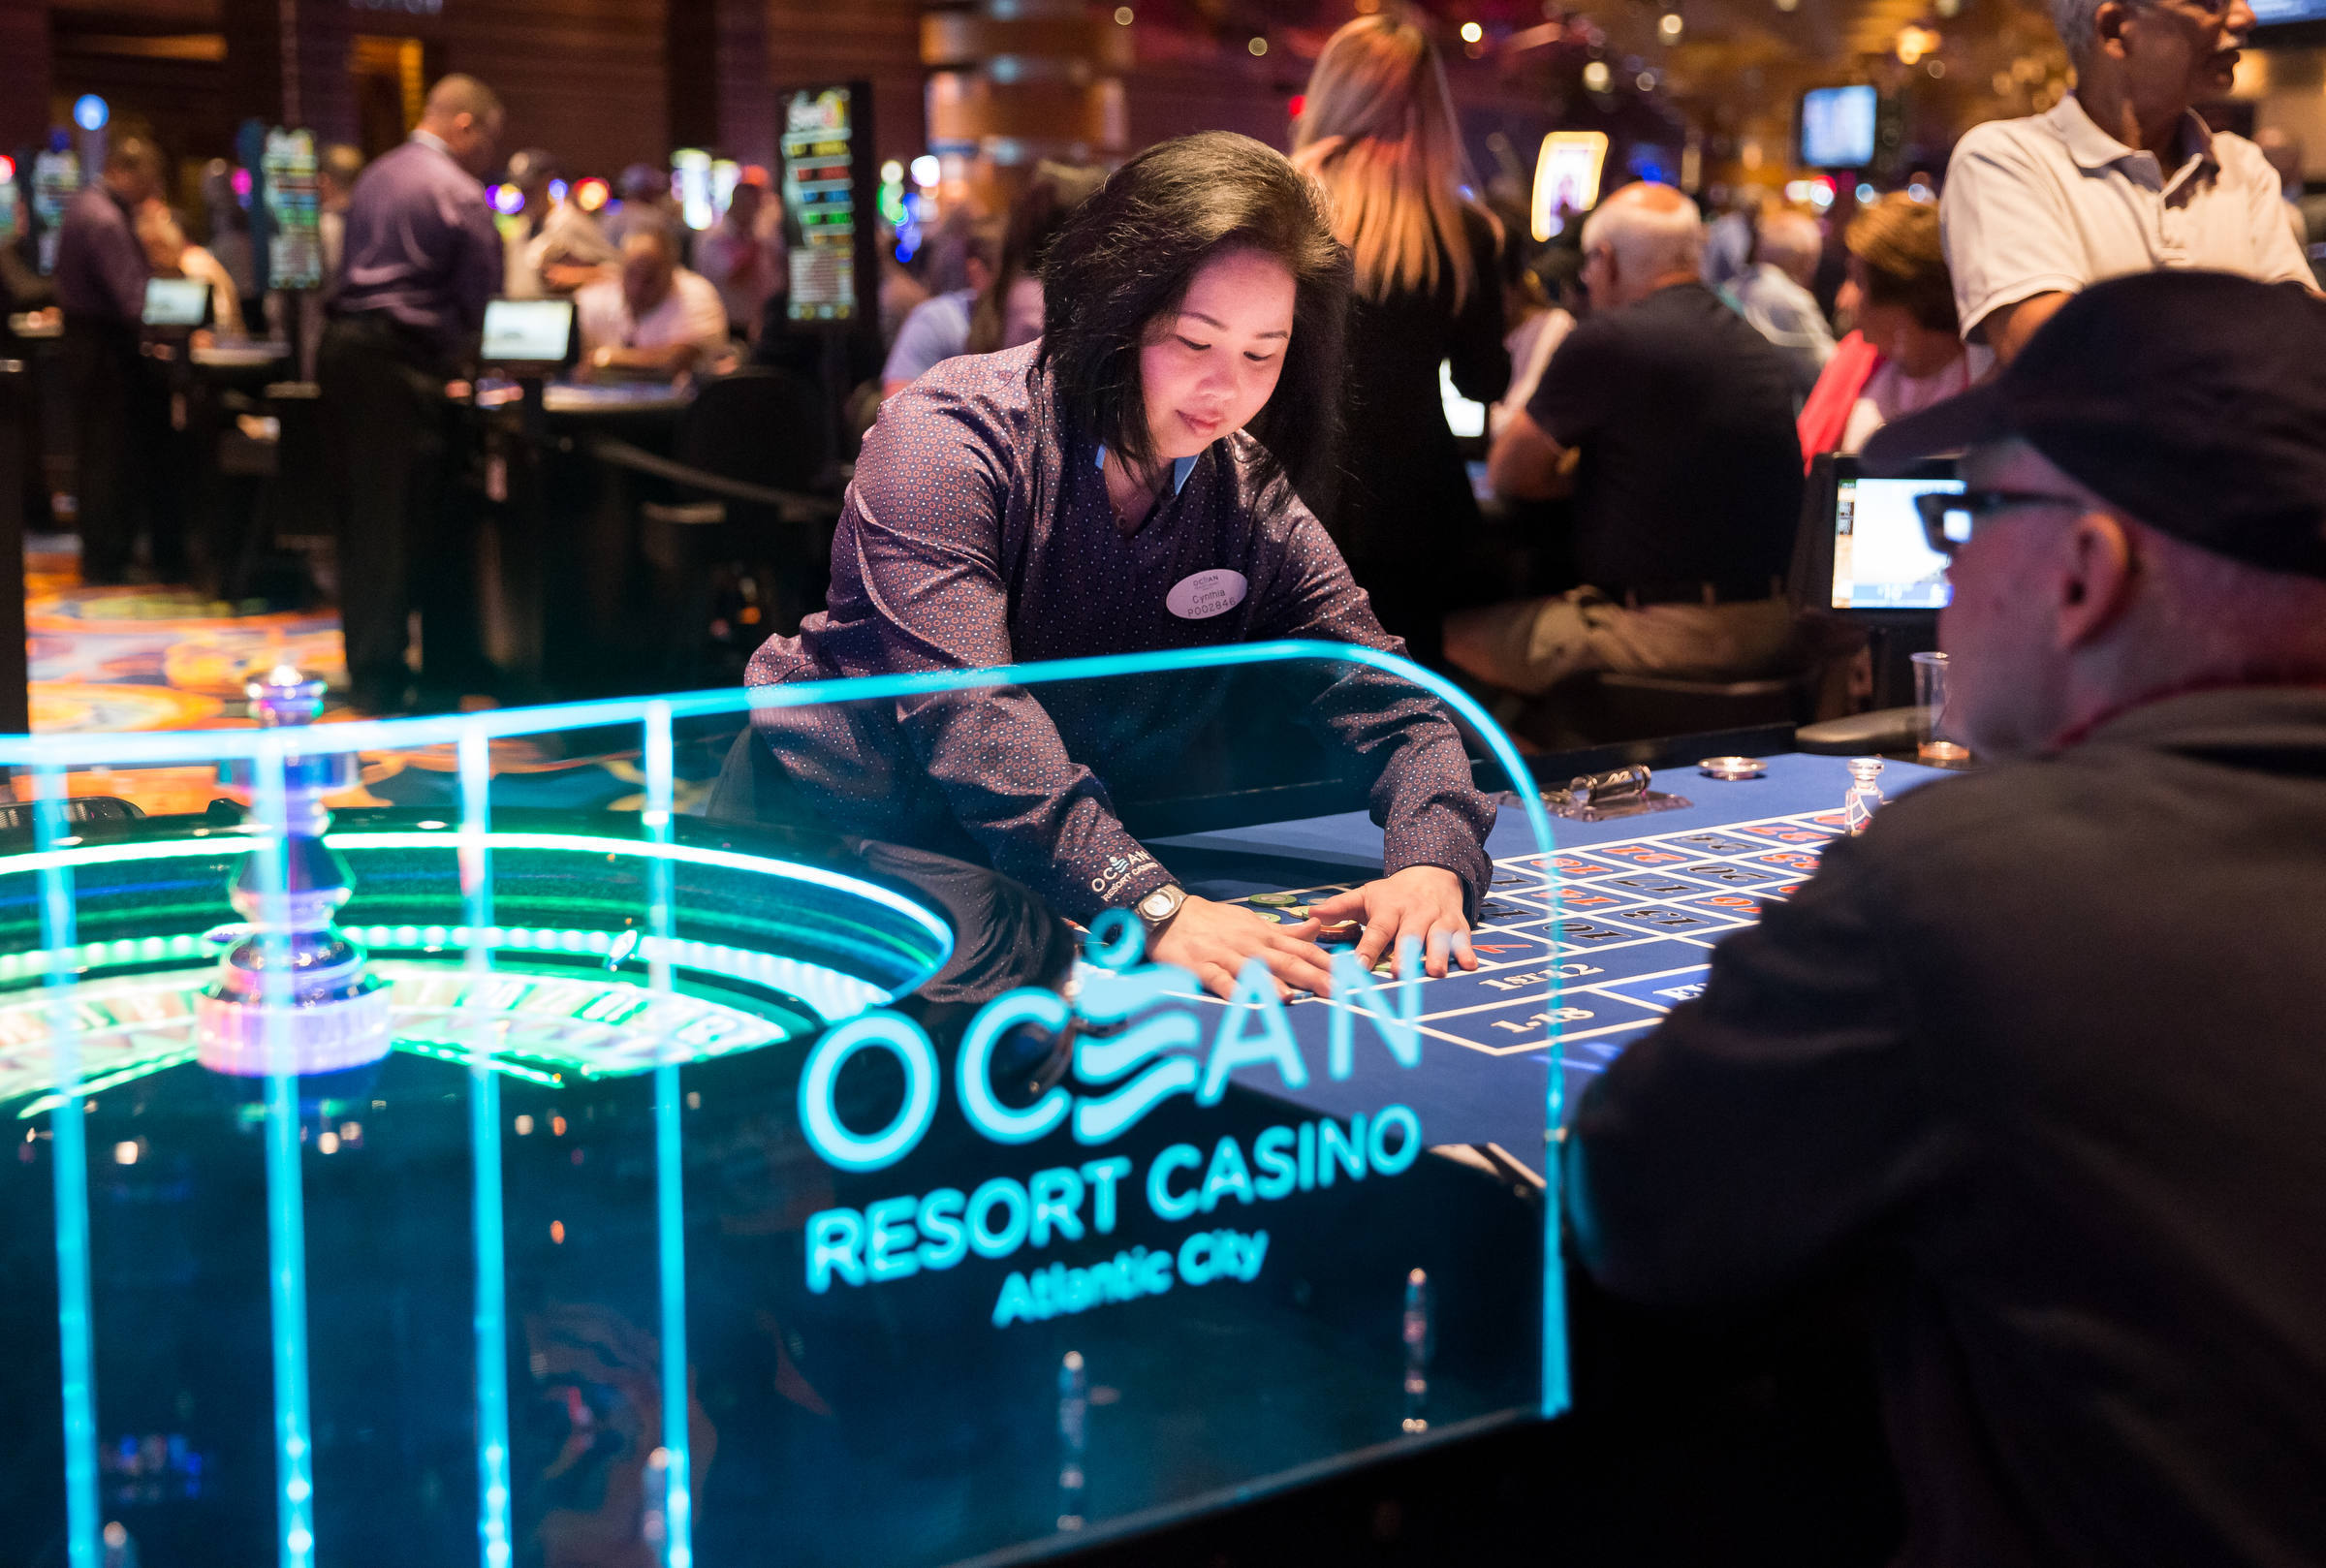 Cynthia Chou, center, a table games dealer, works at Ocean Resort Casino, in Atlantic City, New Jersey, Thursday, June 28, 2018.